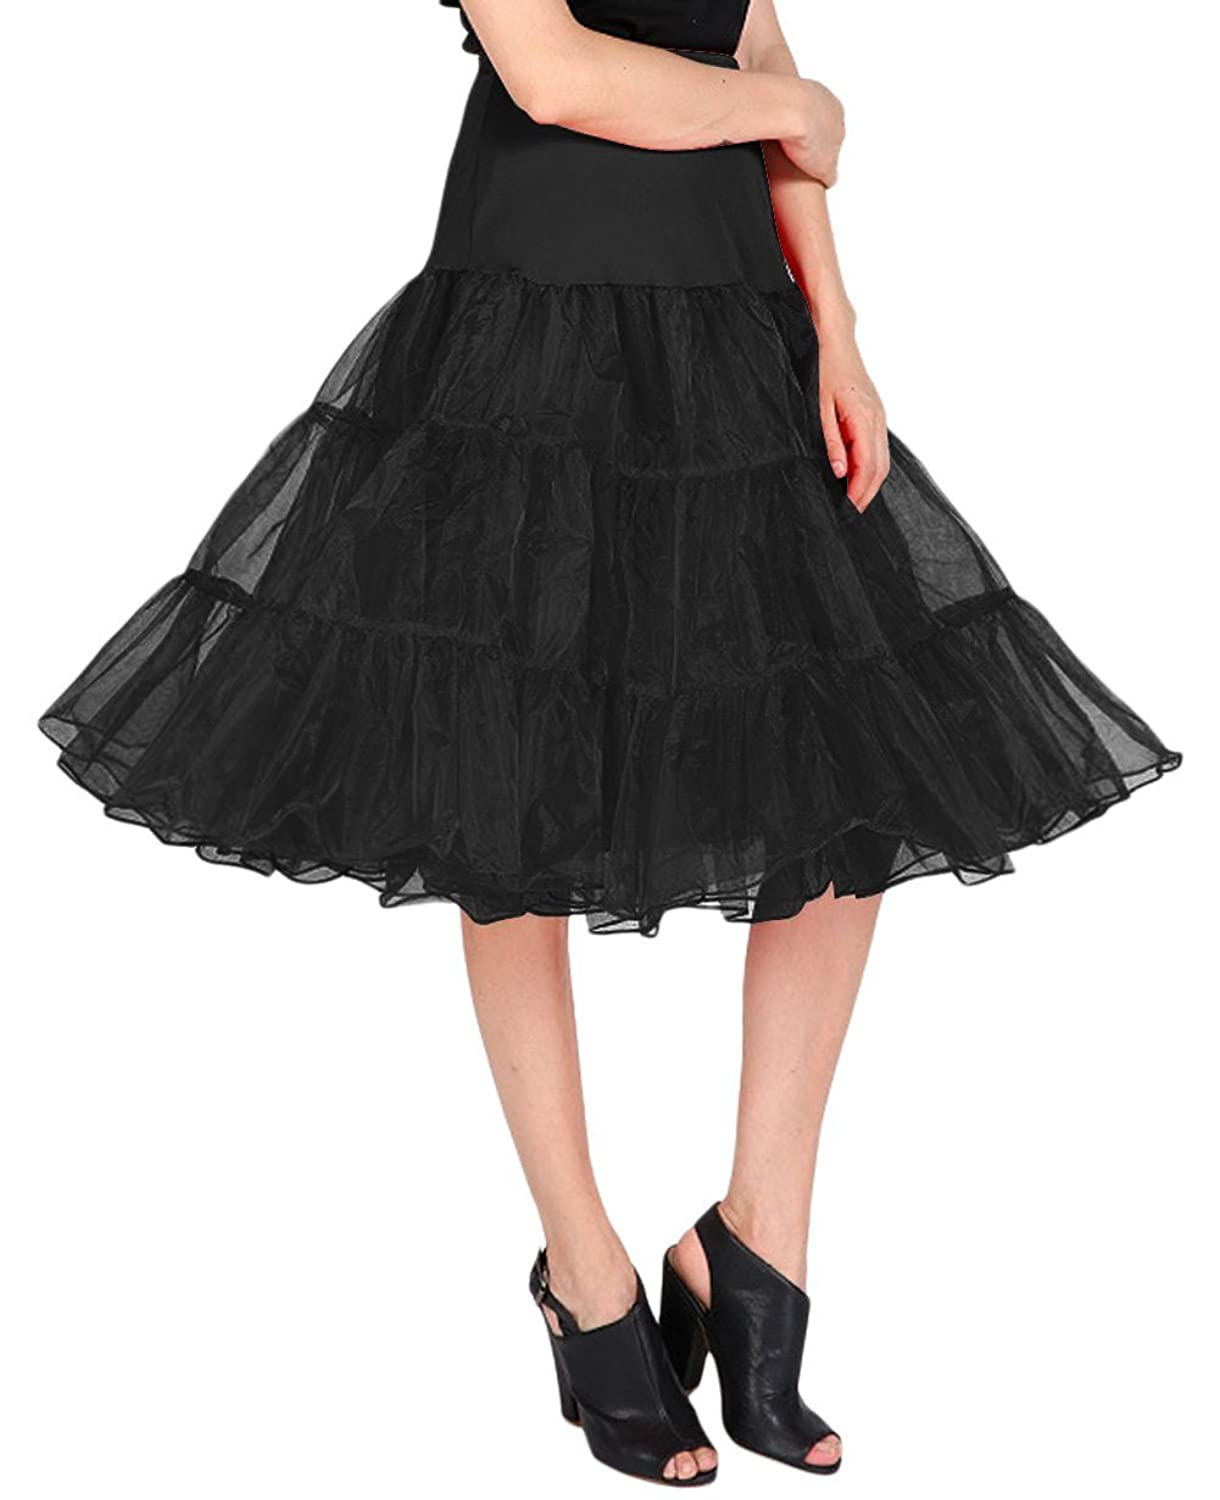 50s Costumes | 50s Halloween Costumes Dressystar 50s 26 Length Tutu $15.00 AT vintagedancer.com